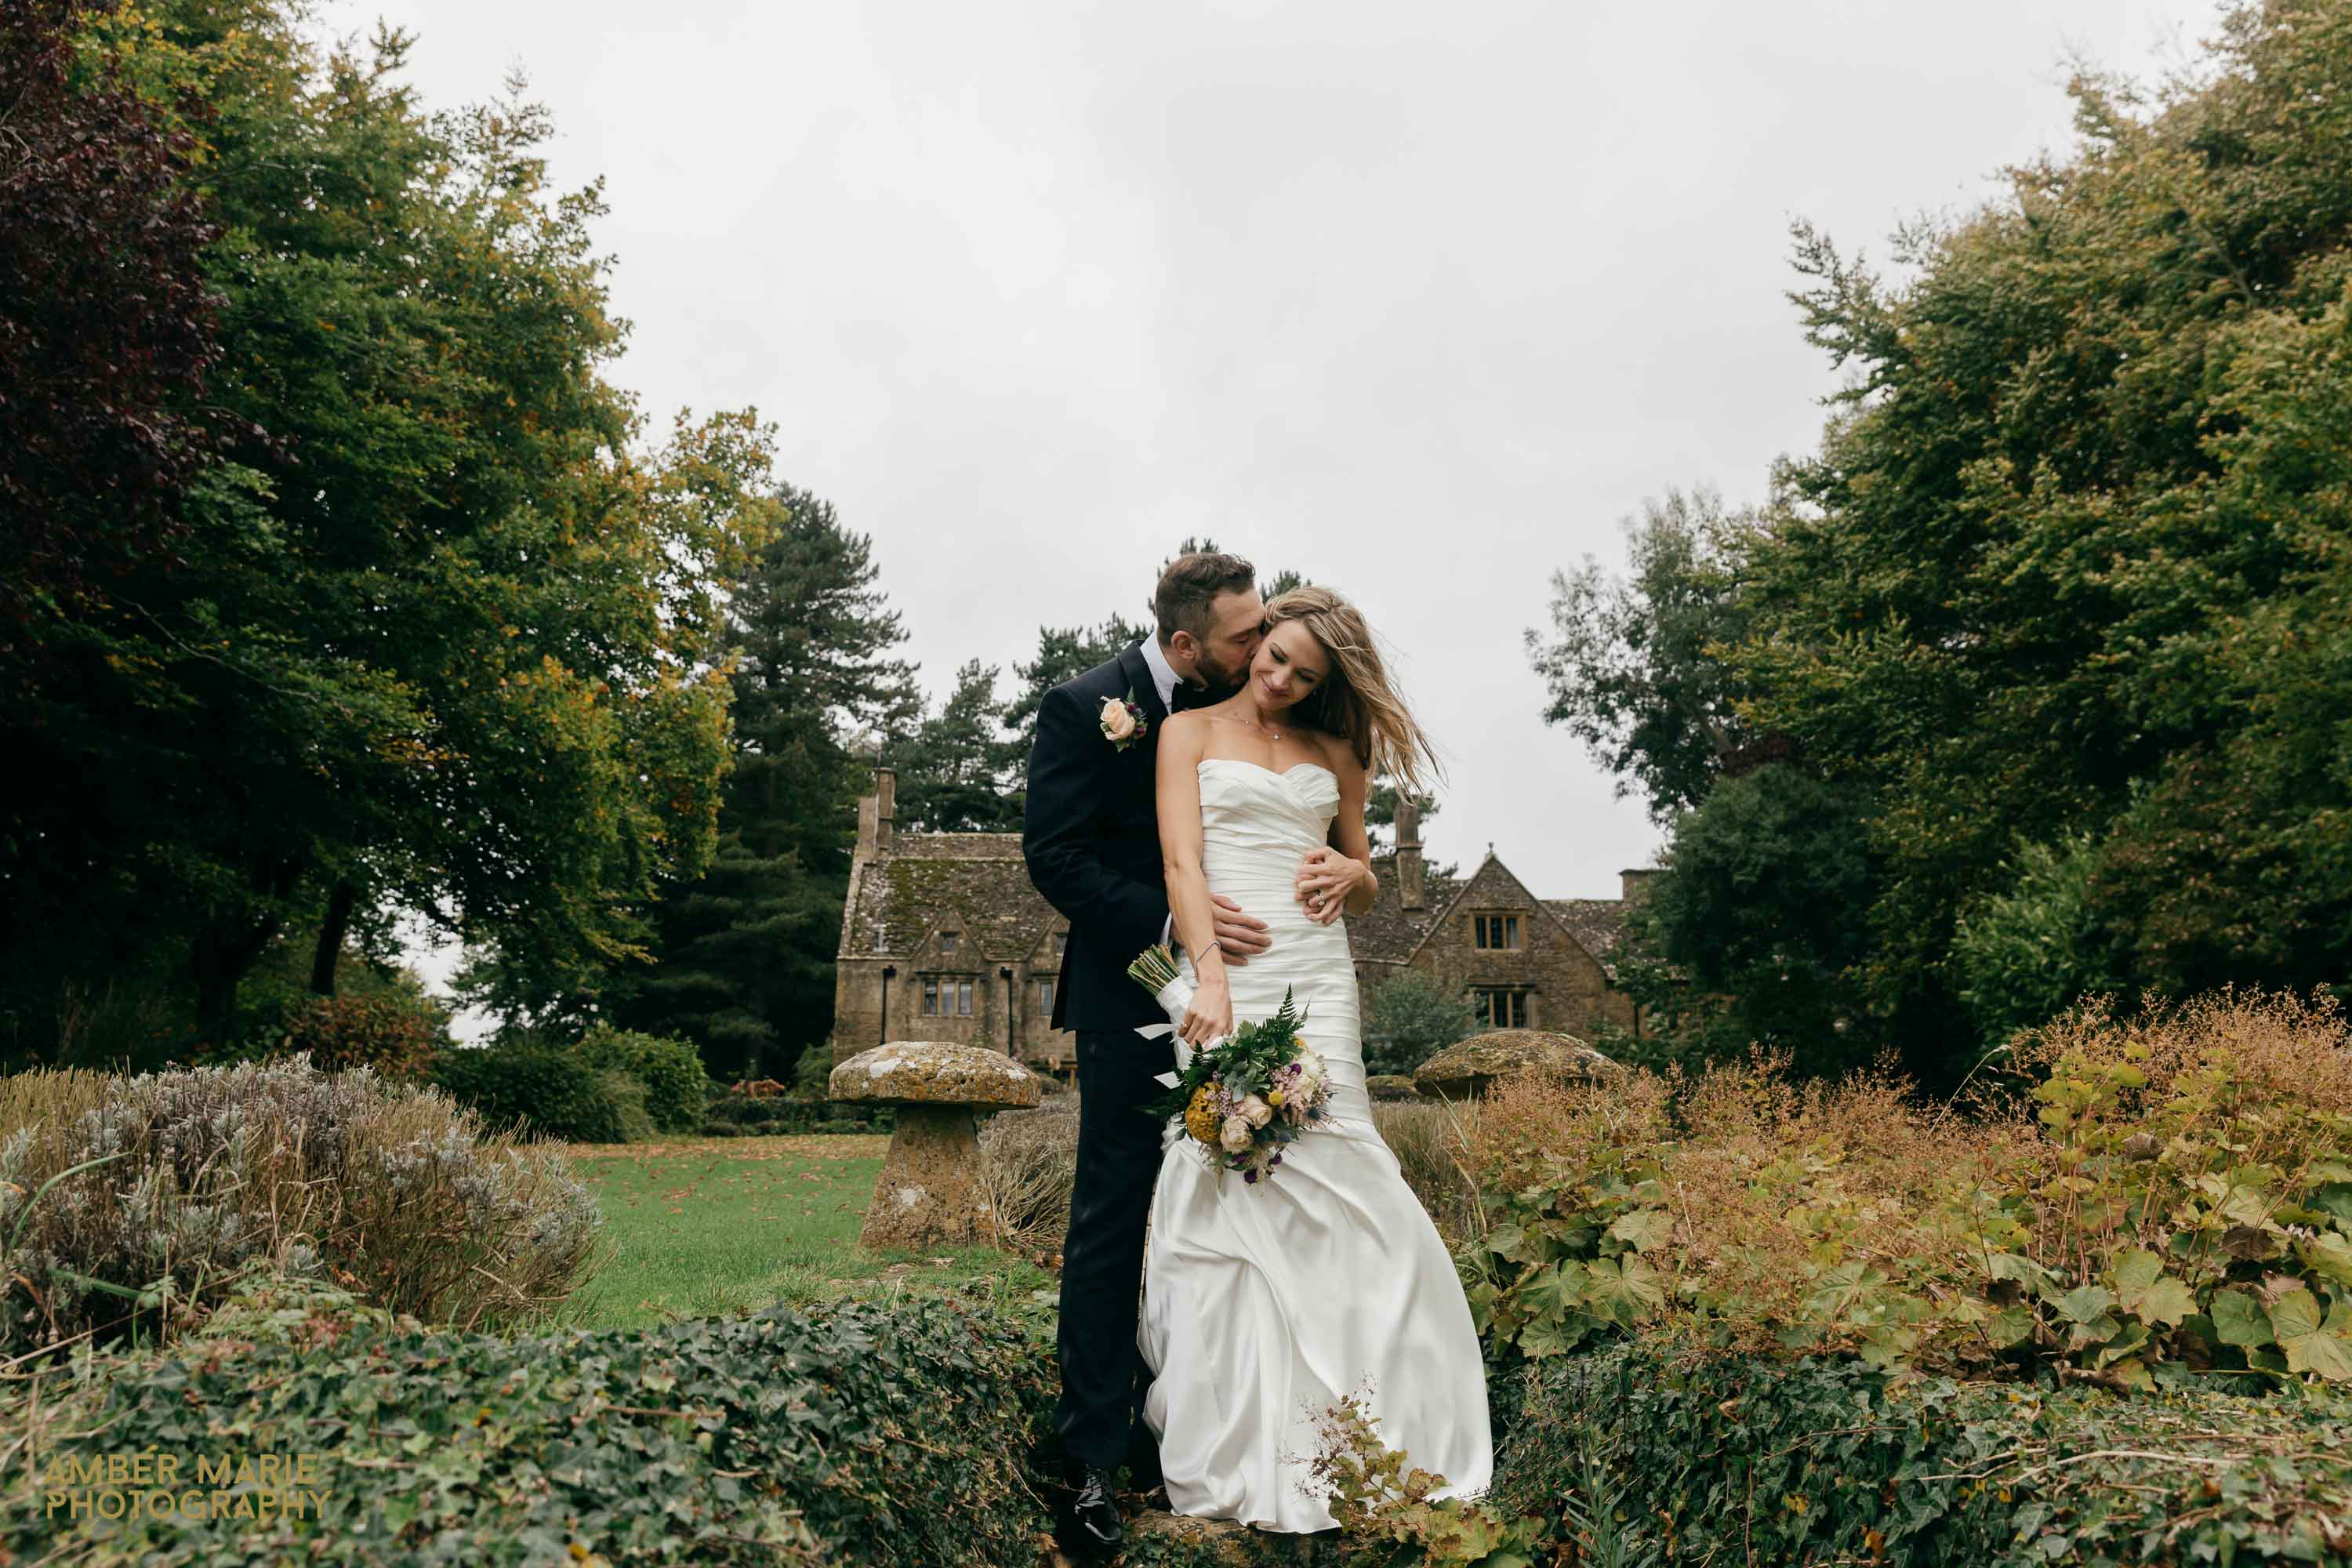 Charingworth Manor wedding by gloucestershire wedding photographer